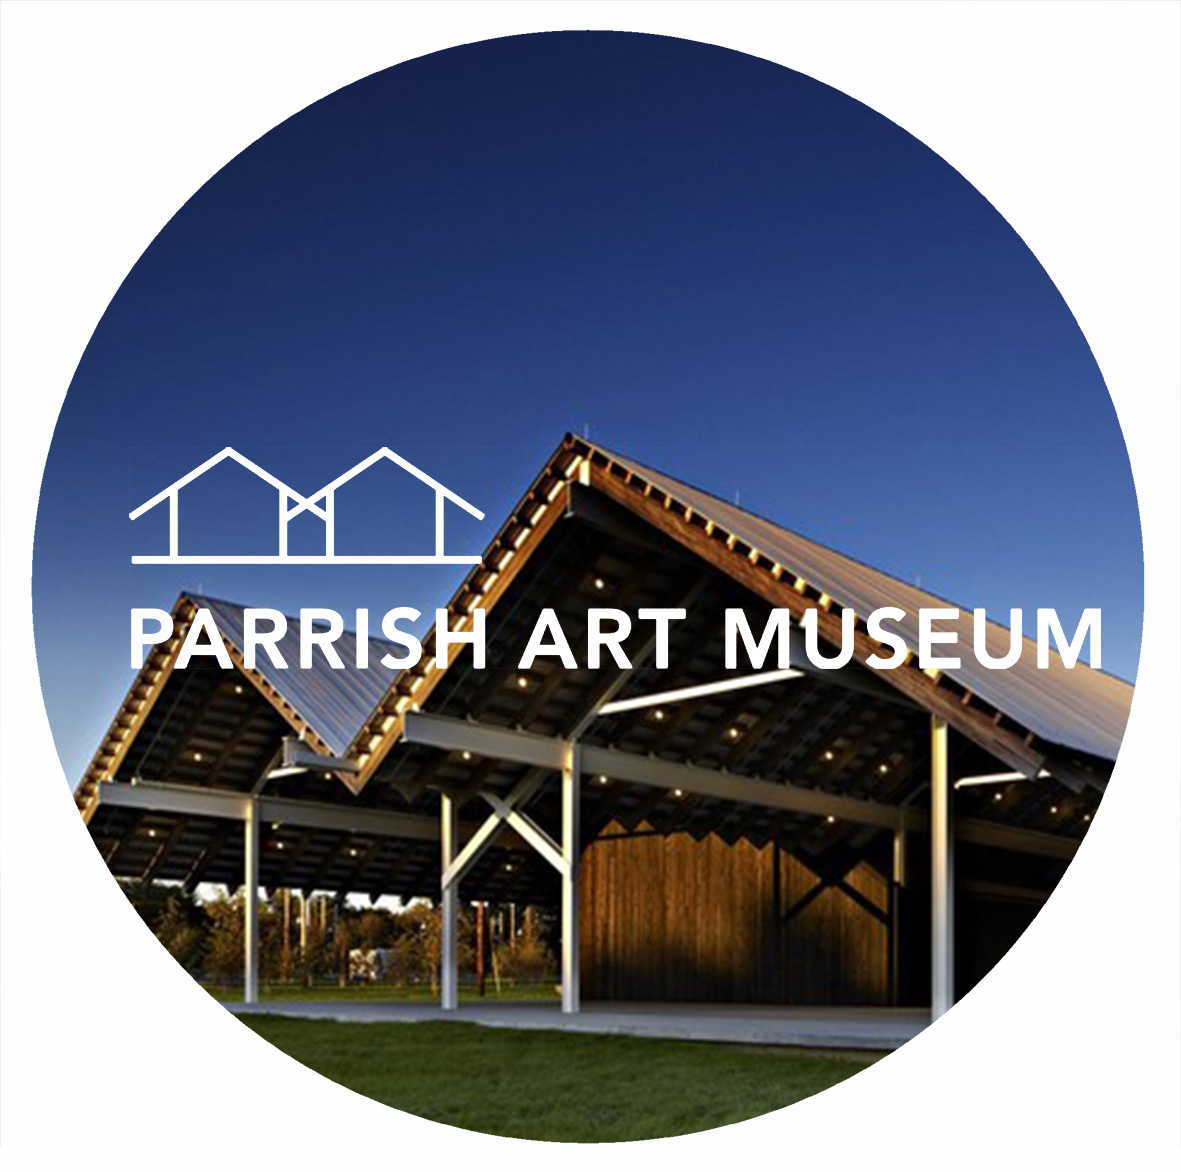 PARRISH ART MUSEUM 279 Montauk Hwy, Water Mill, NY 11976,